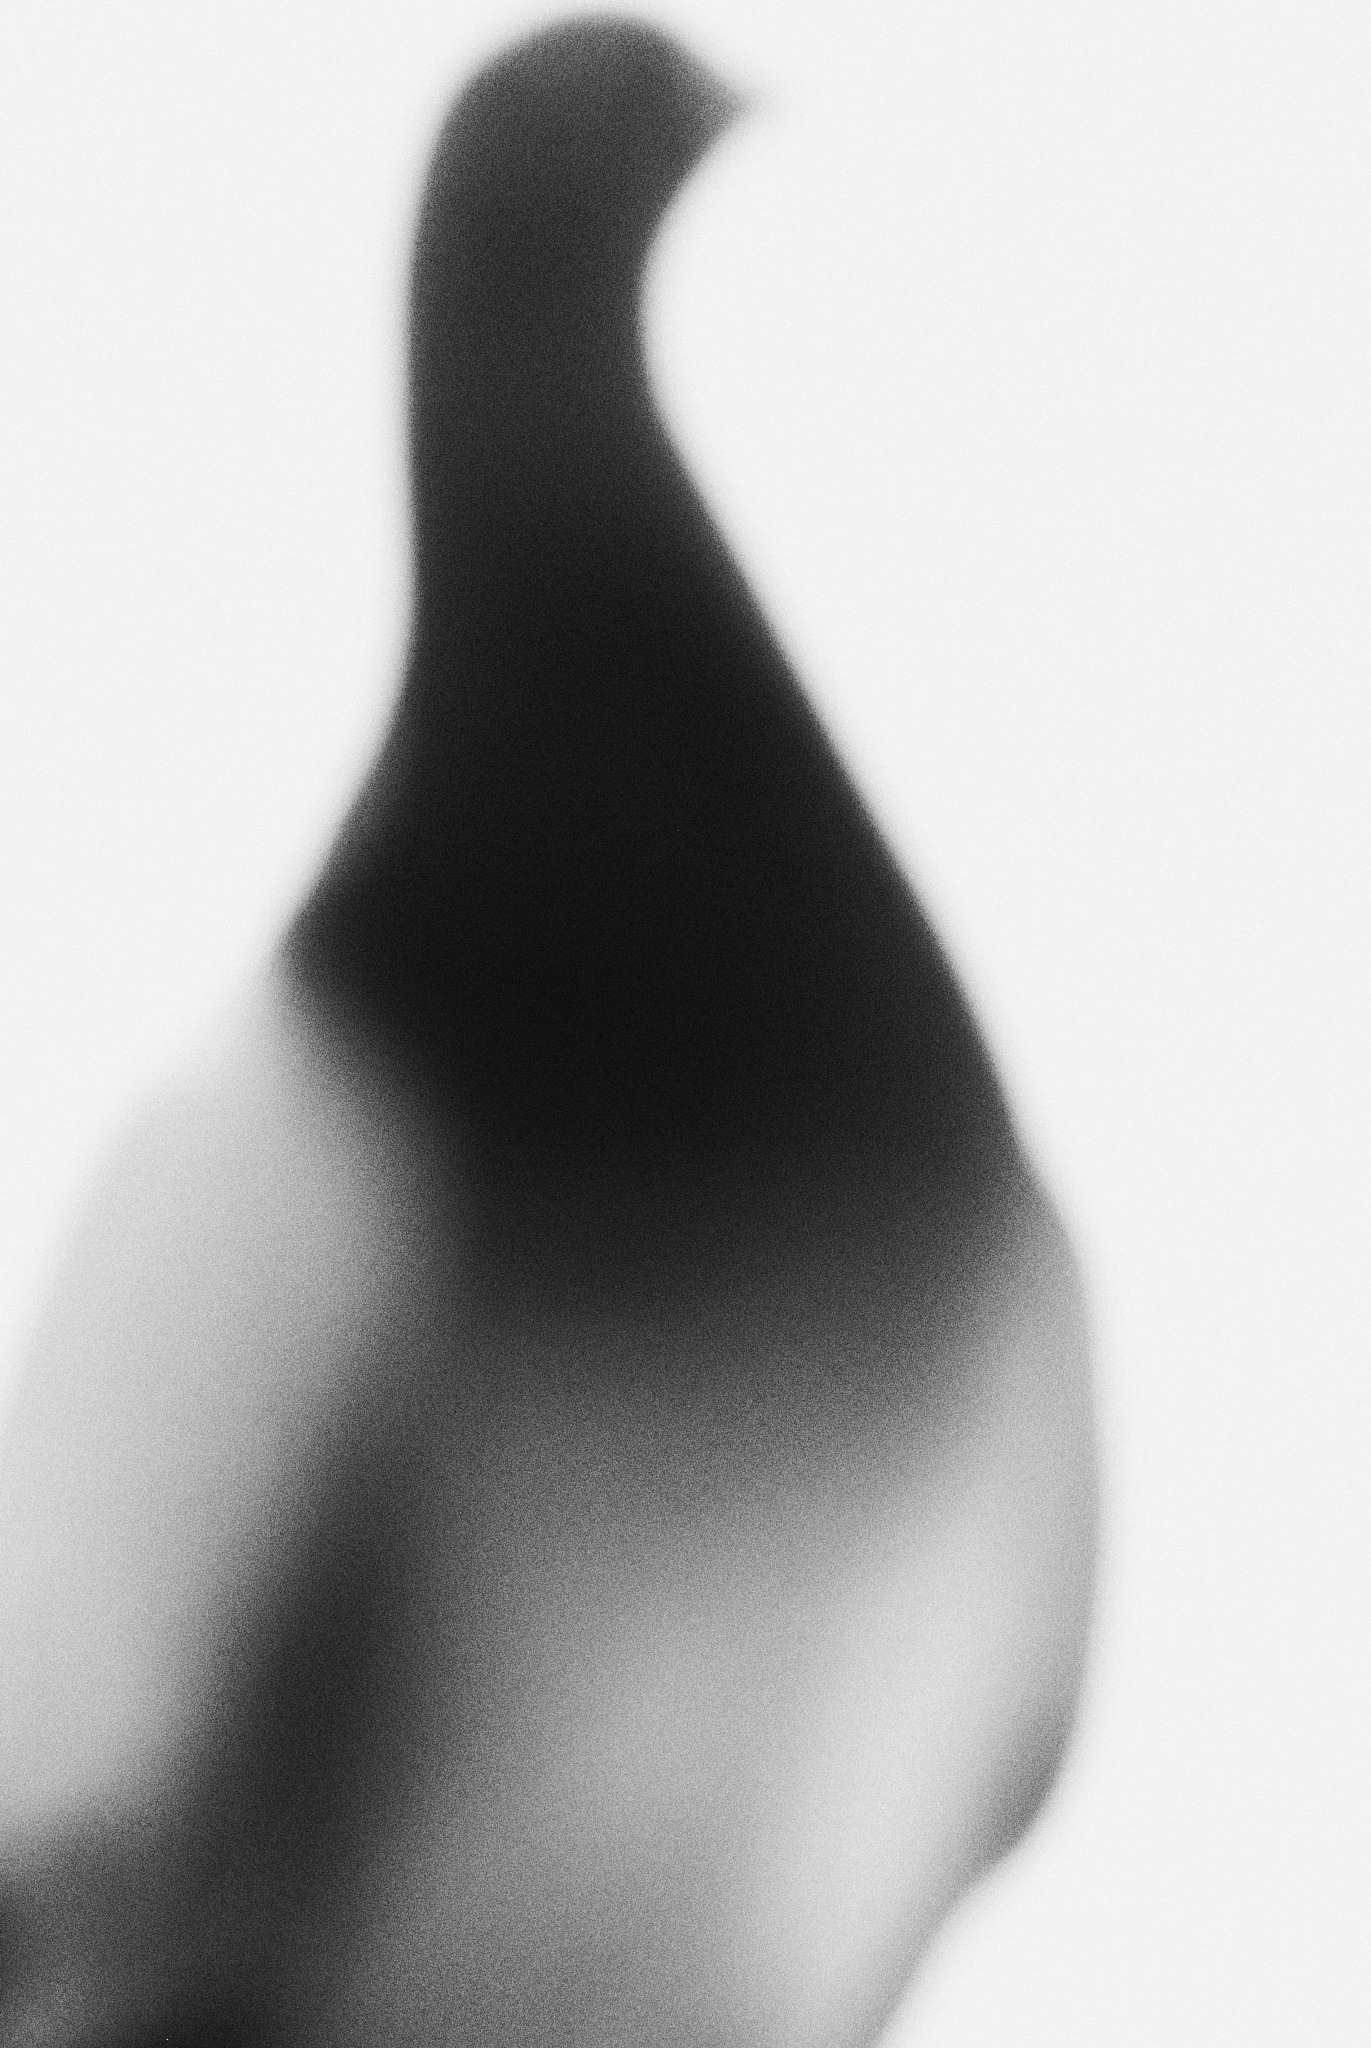 Photo in Black and White #monochrome #black and white #bird #dove #abstract #japan #osaka